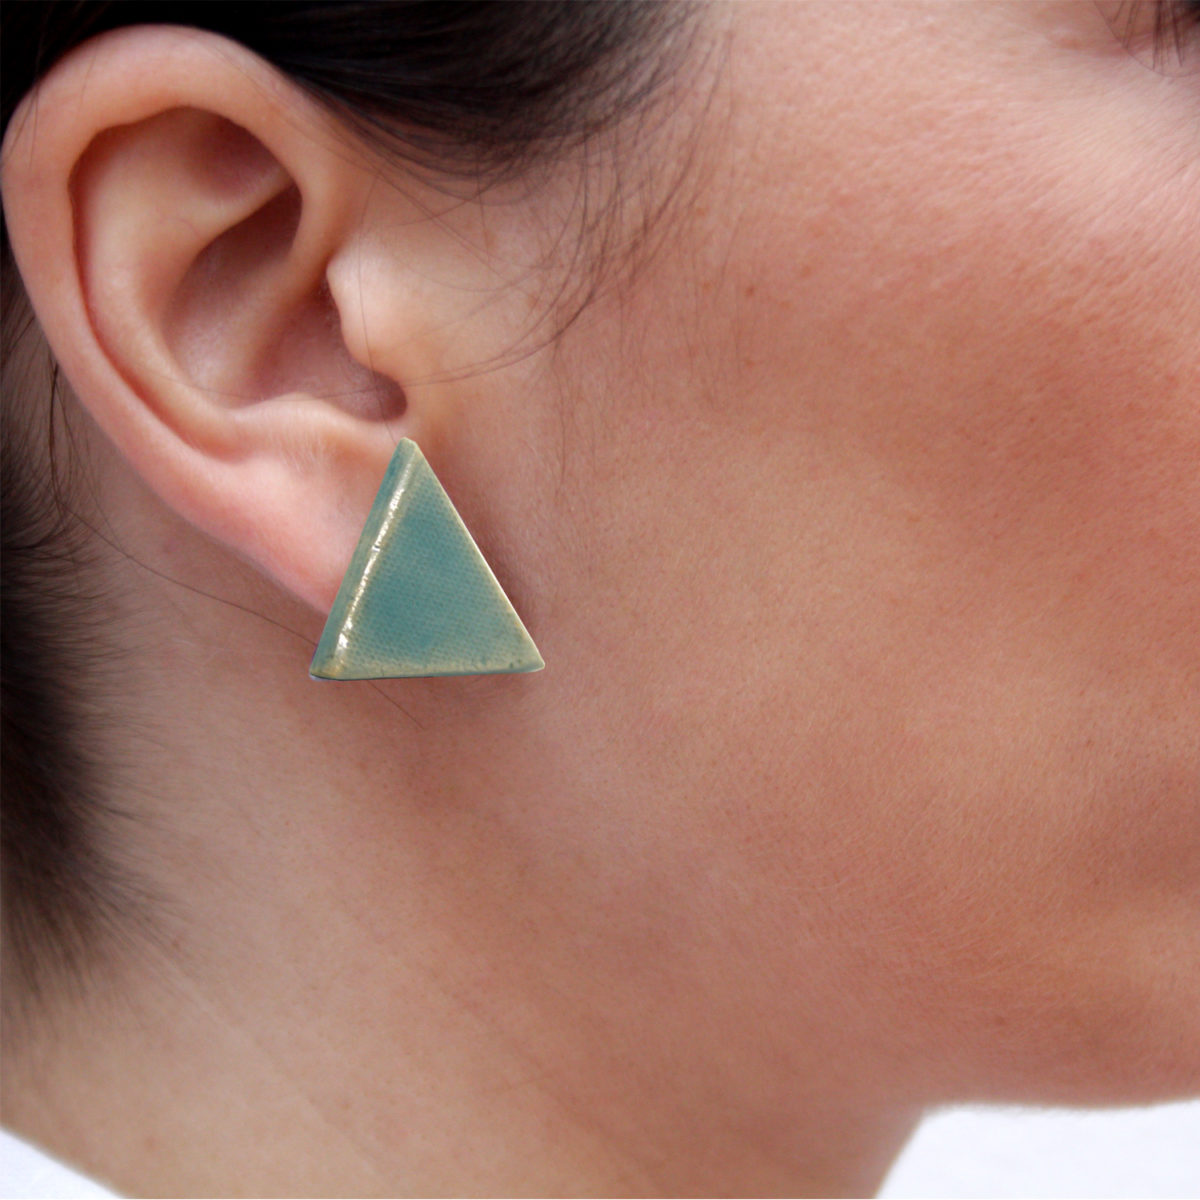 Pendientes de cerámica triangulares hechos a mano color verde agua Fuente Bowtery minimalista. Minimalist handmade ceramic triangle earrings water blue green